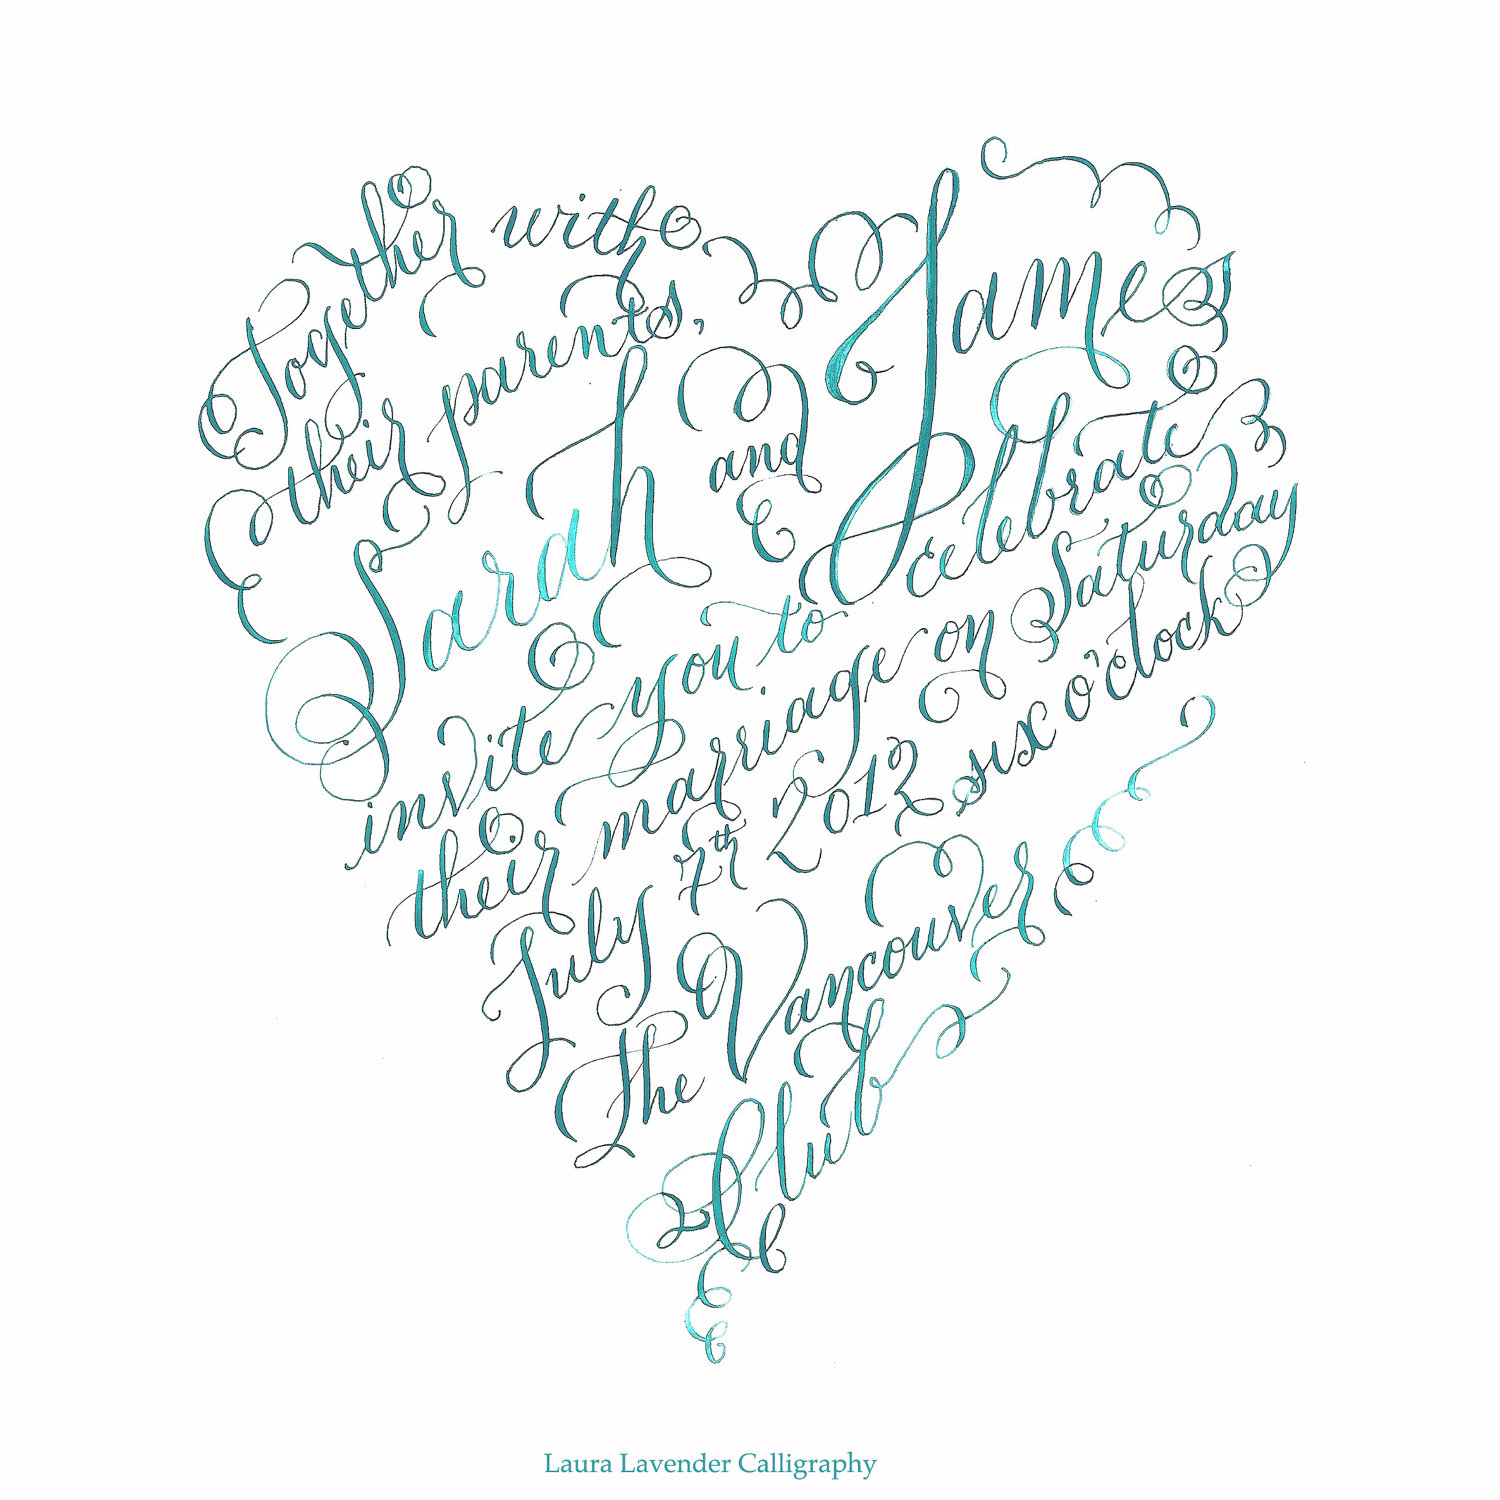 lauralavendercalligraphy - heart shaped invite calligraphy hand lettered vancouver bc canada